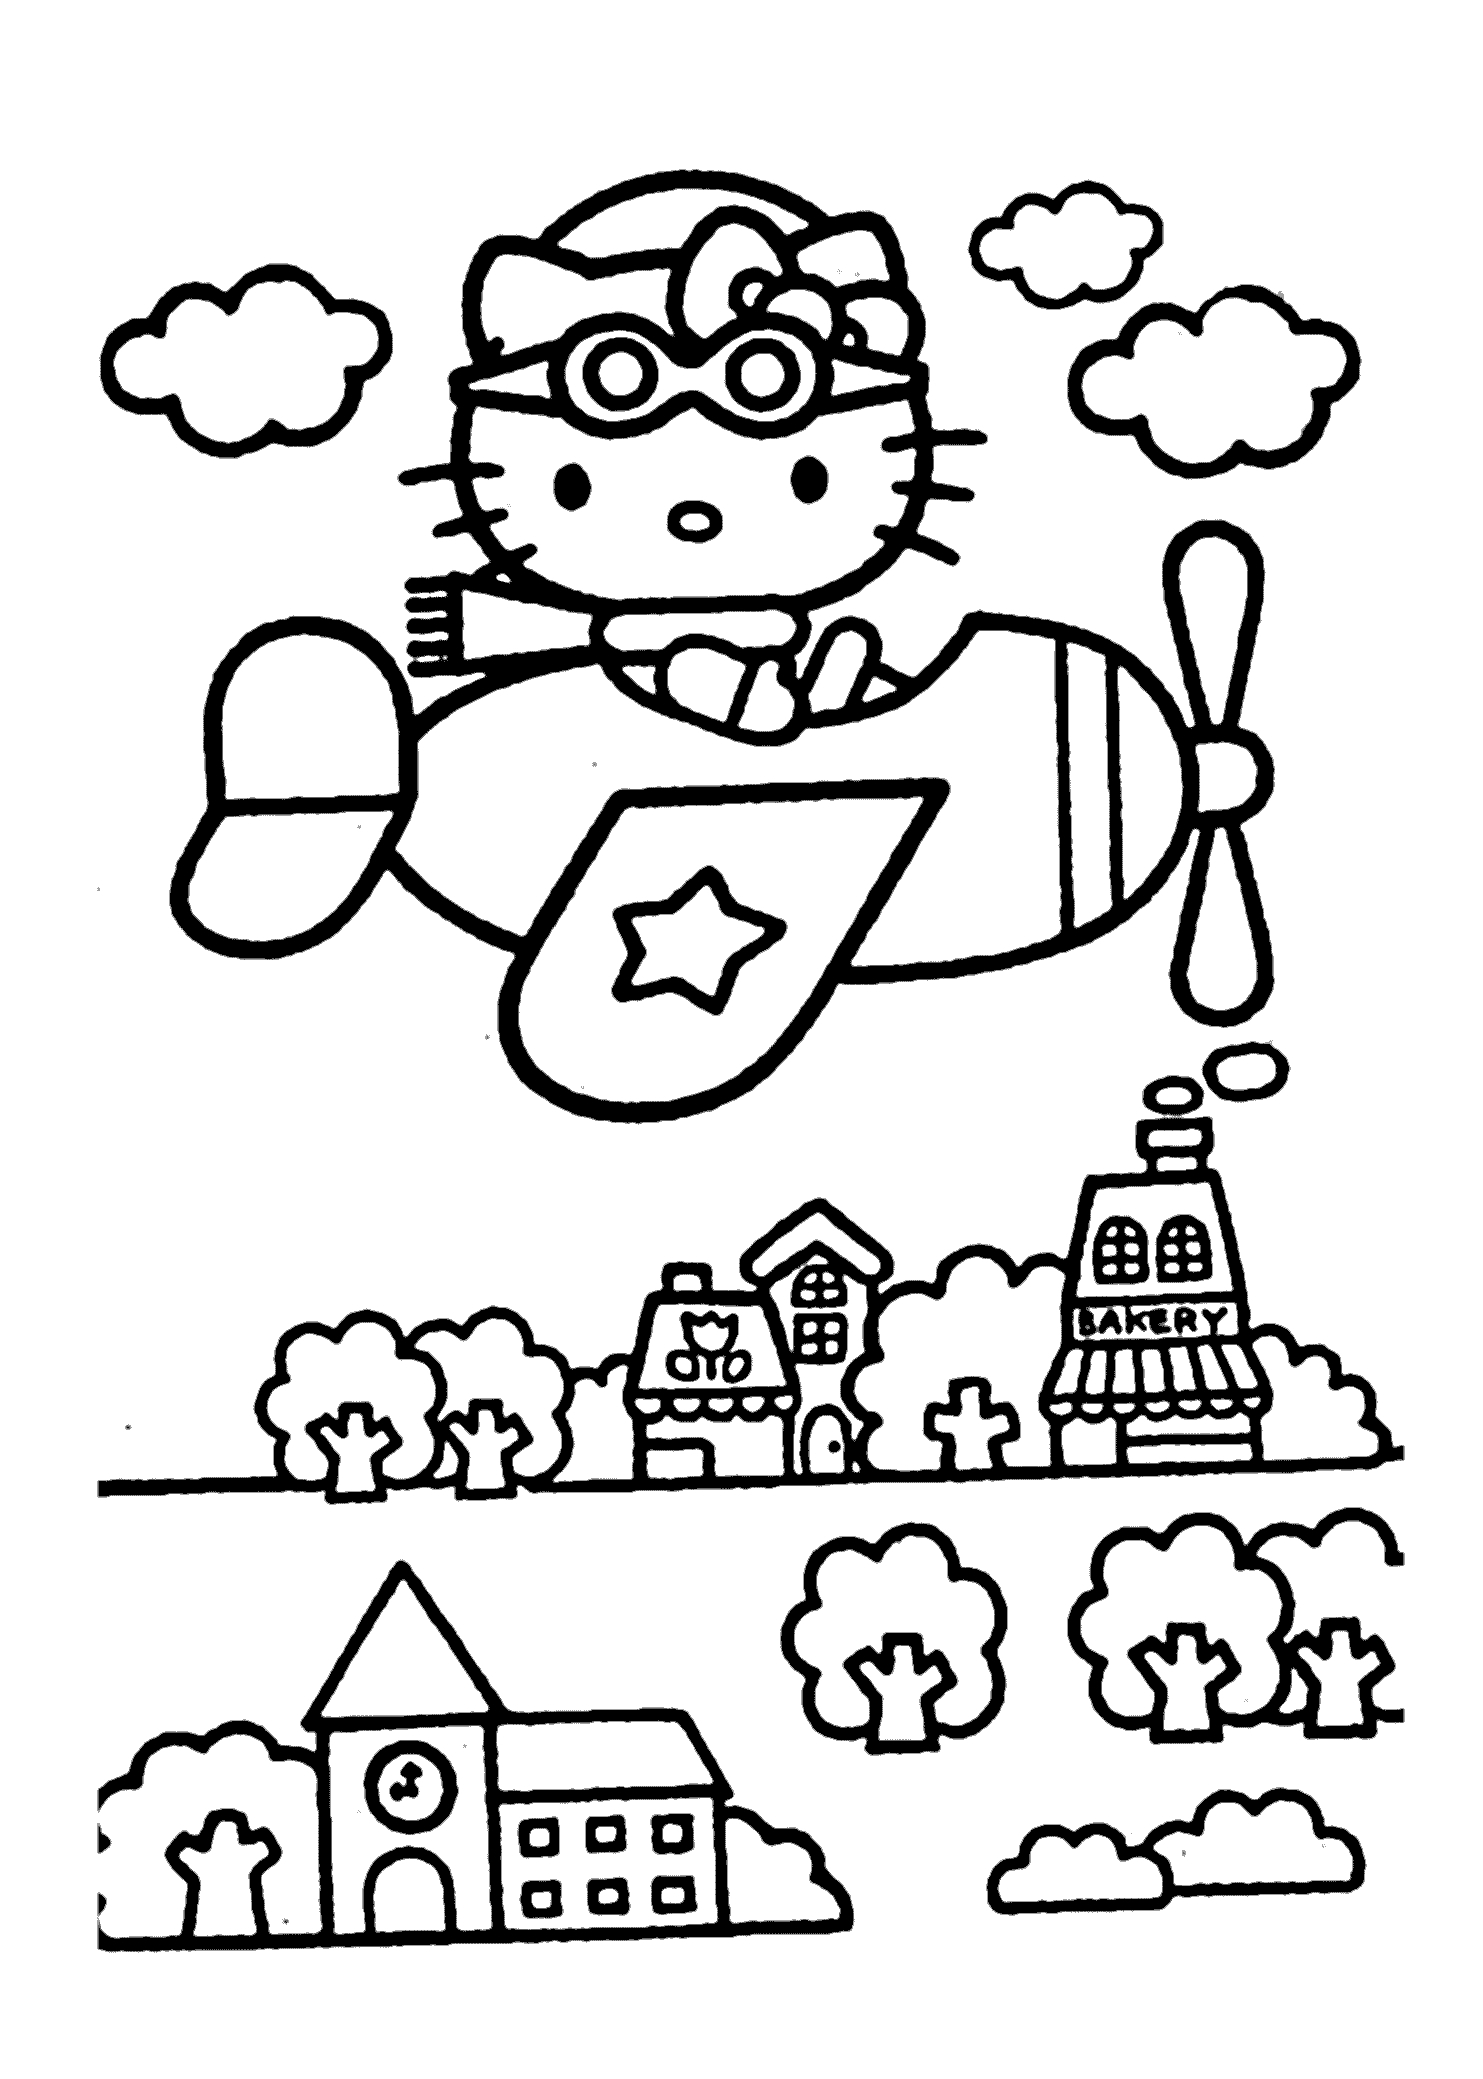 Hello Kitty Airplain – Coloring Pages for Kids to Print Free Printable Of Proven Coloring Pages to Print Hello Kitty 2895 Unknown Printable